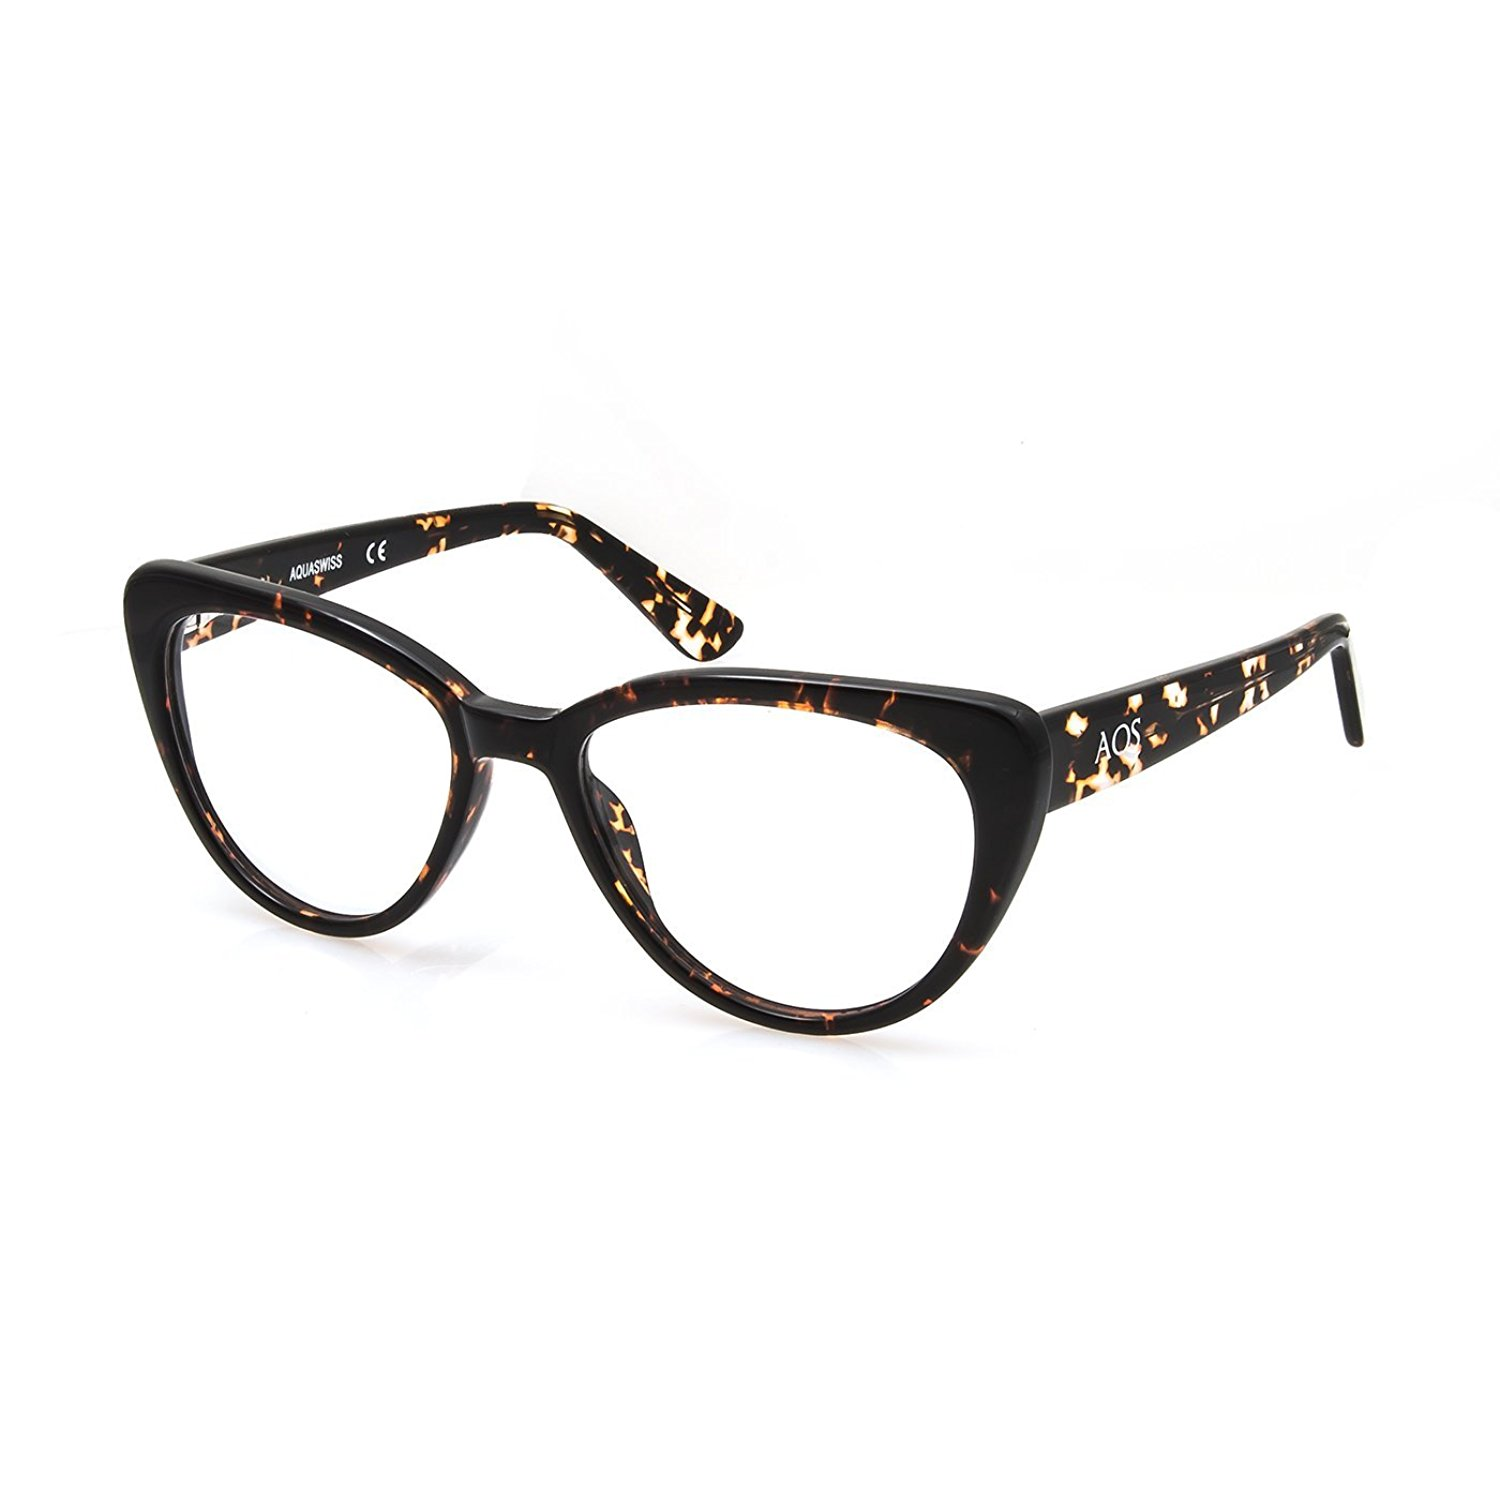 f605549e941 Get Quotations · AQS Women s Betsy Cateye Optical Eyeglasses